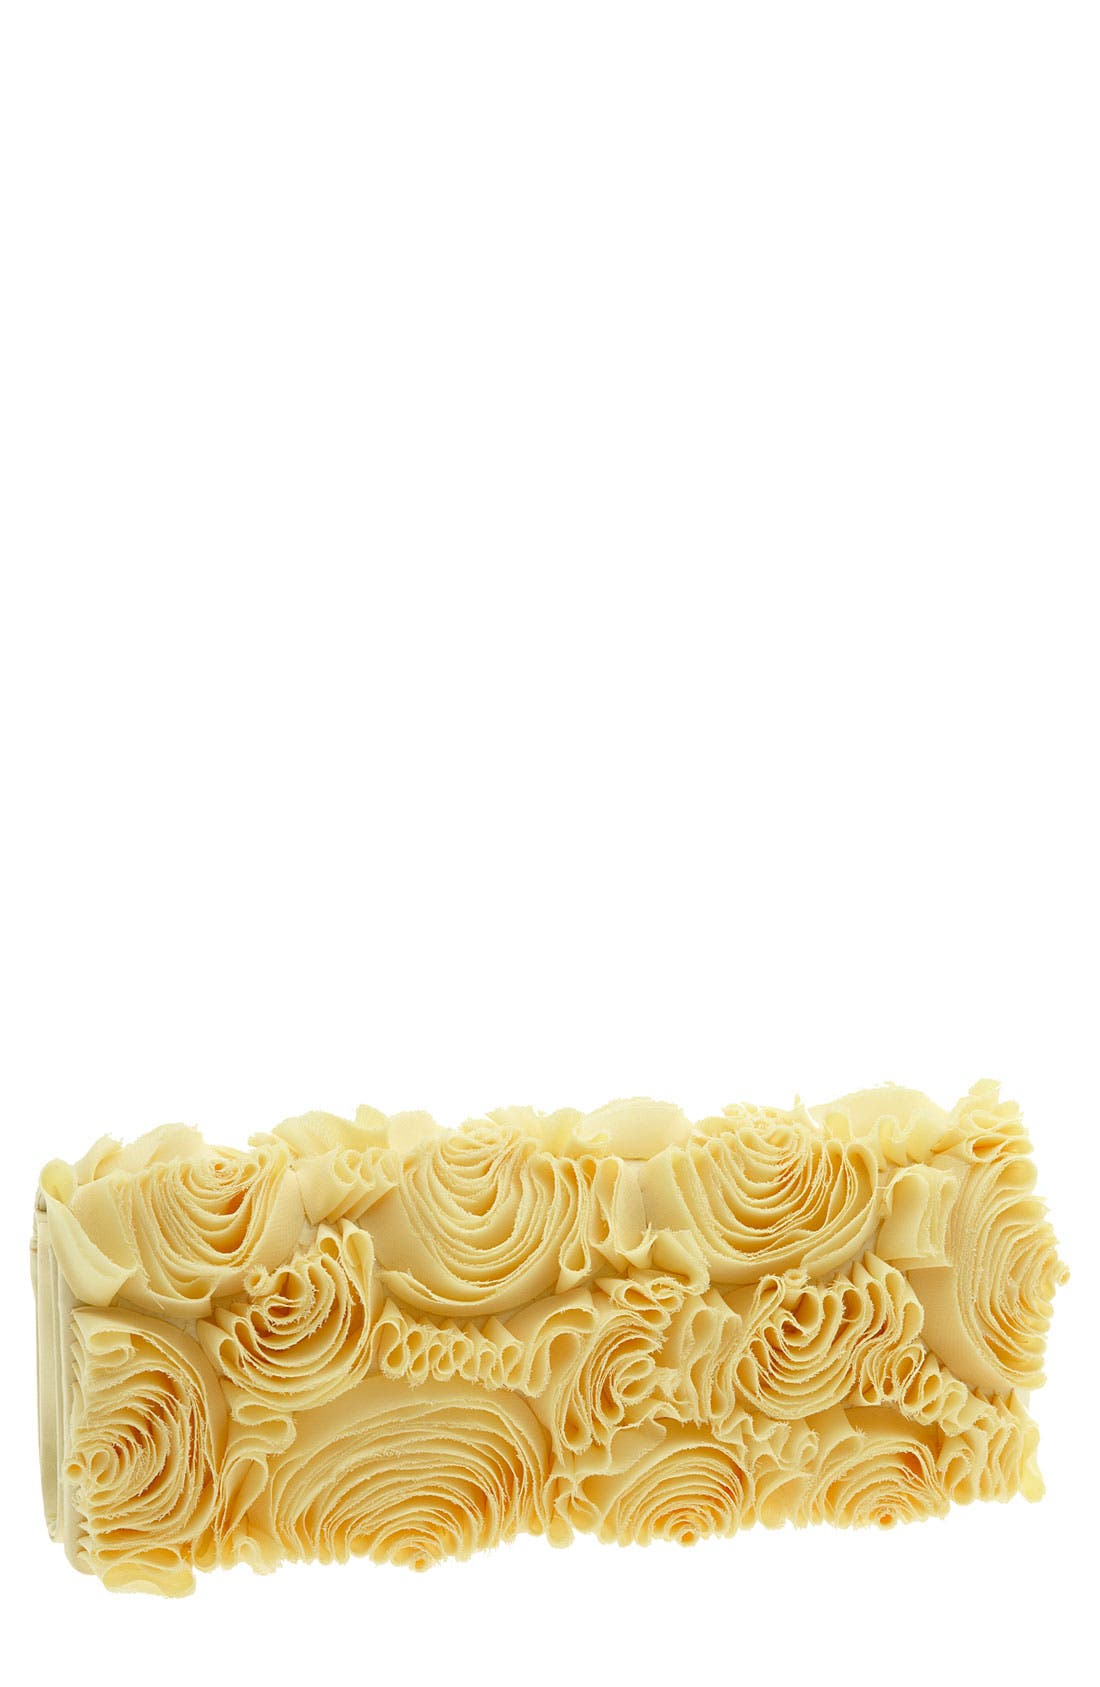 Alternate Image 1 Selected - Sondra Roberts Floral Organza Clutch